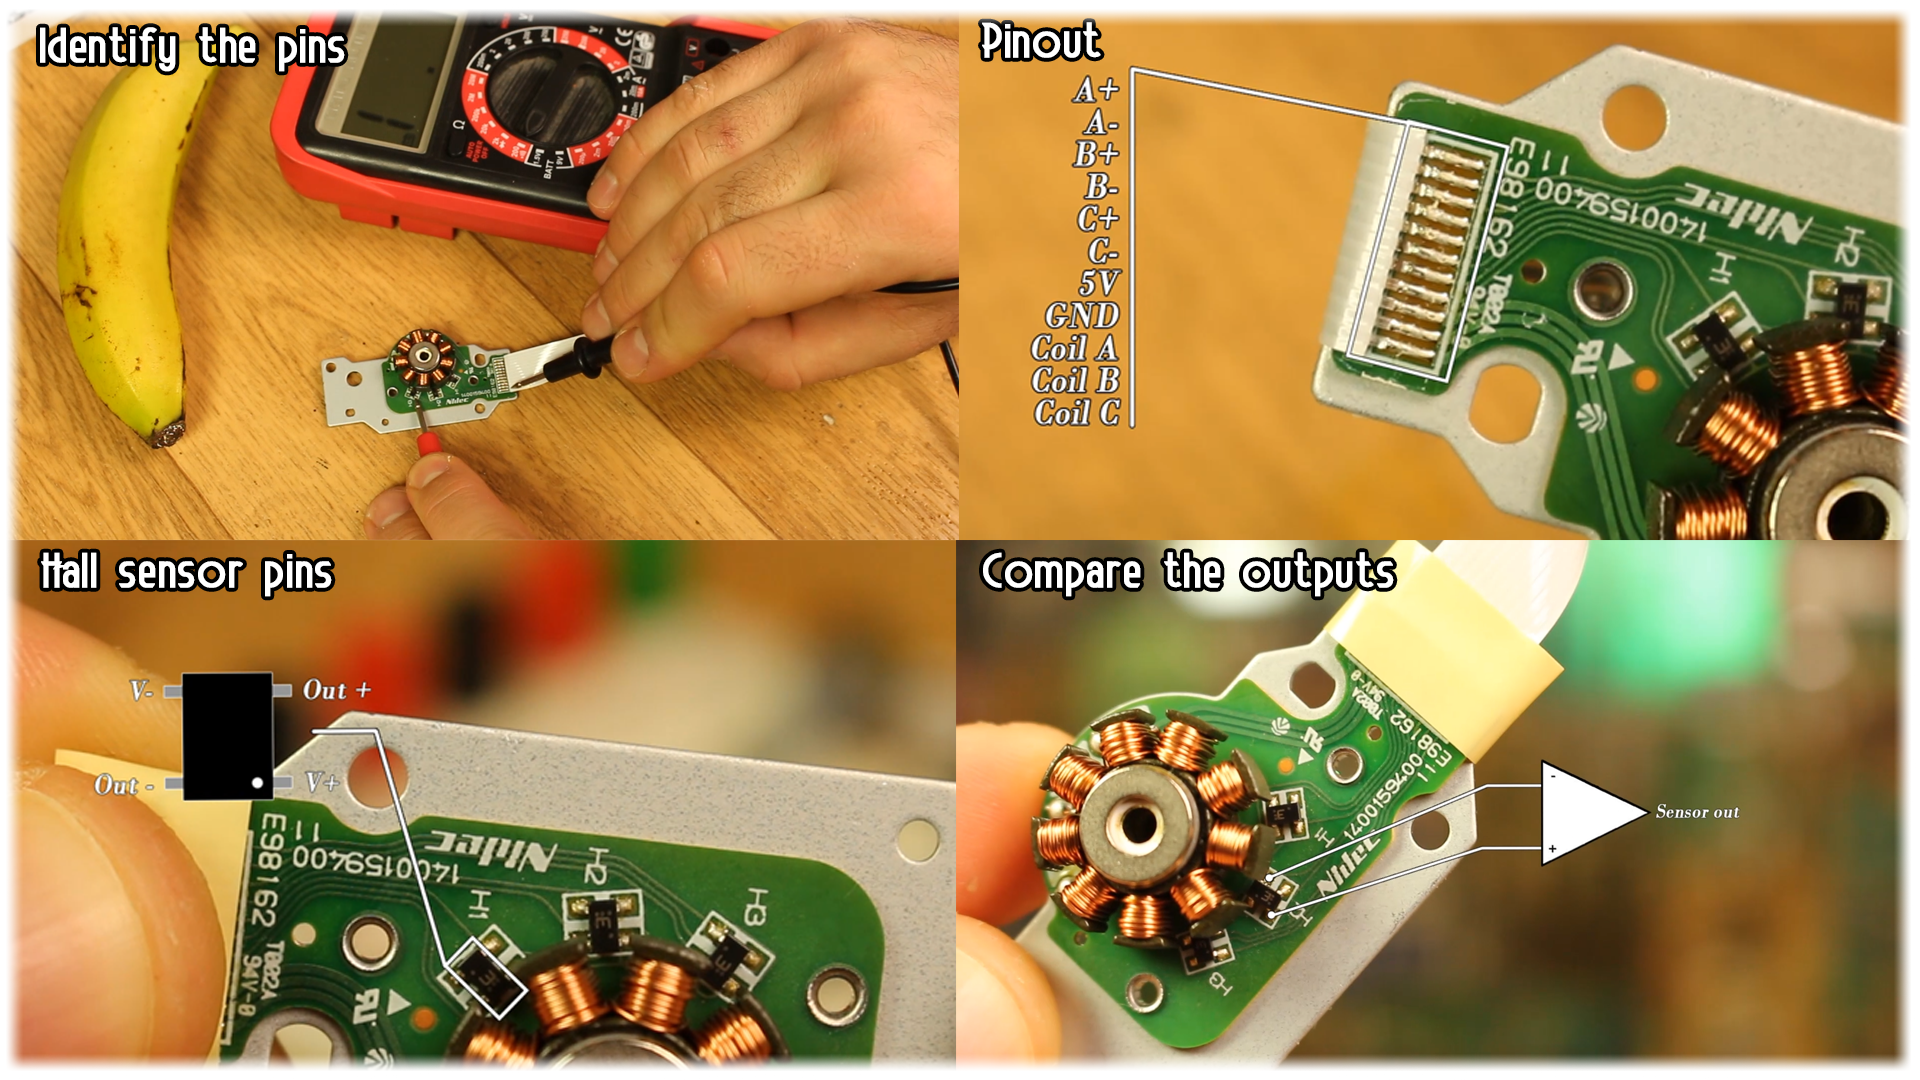 CD writer brushless motor pins circuit